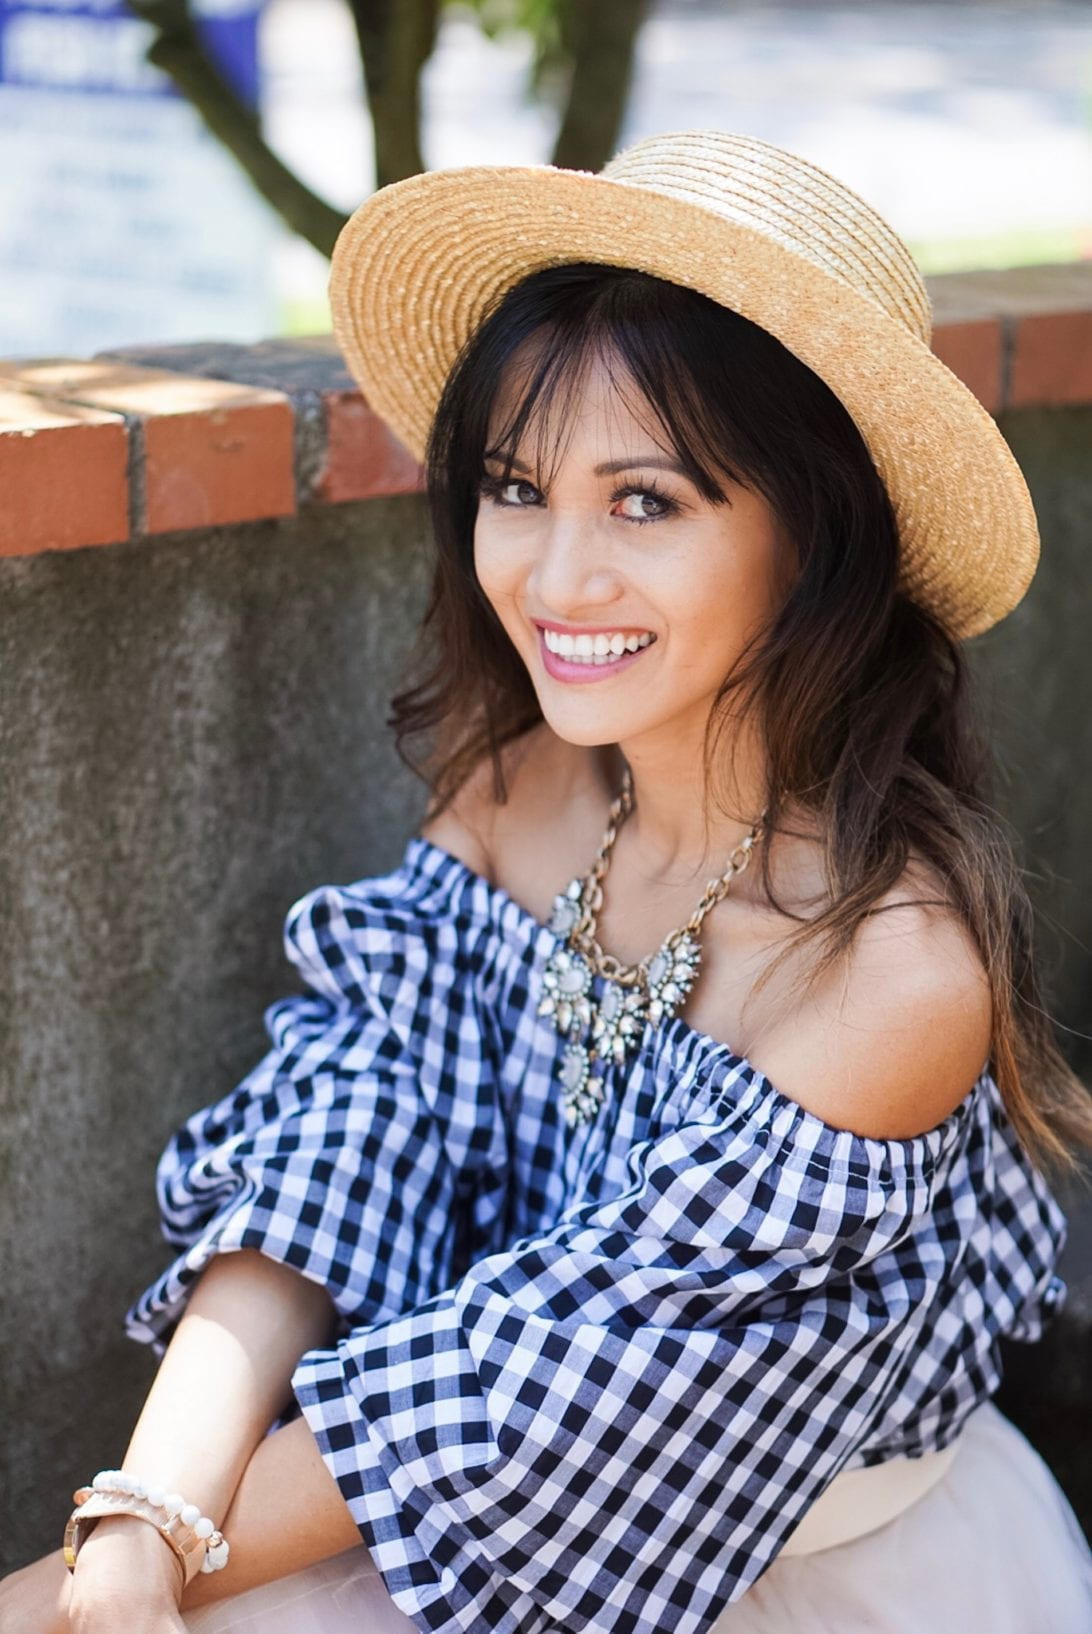 boat hat, straw hat, gingham top, summer top, blue and white,